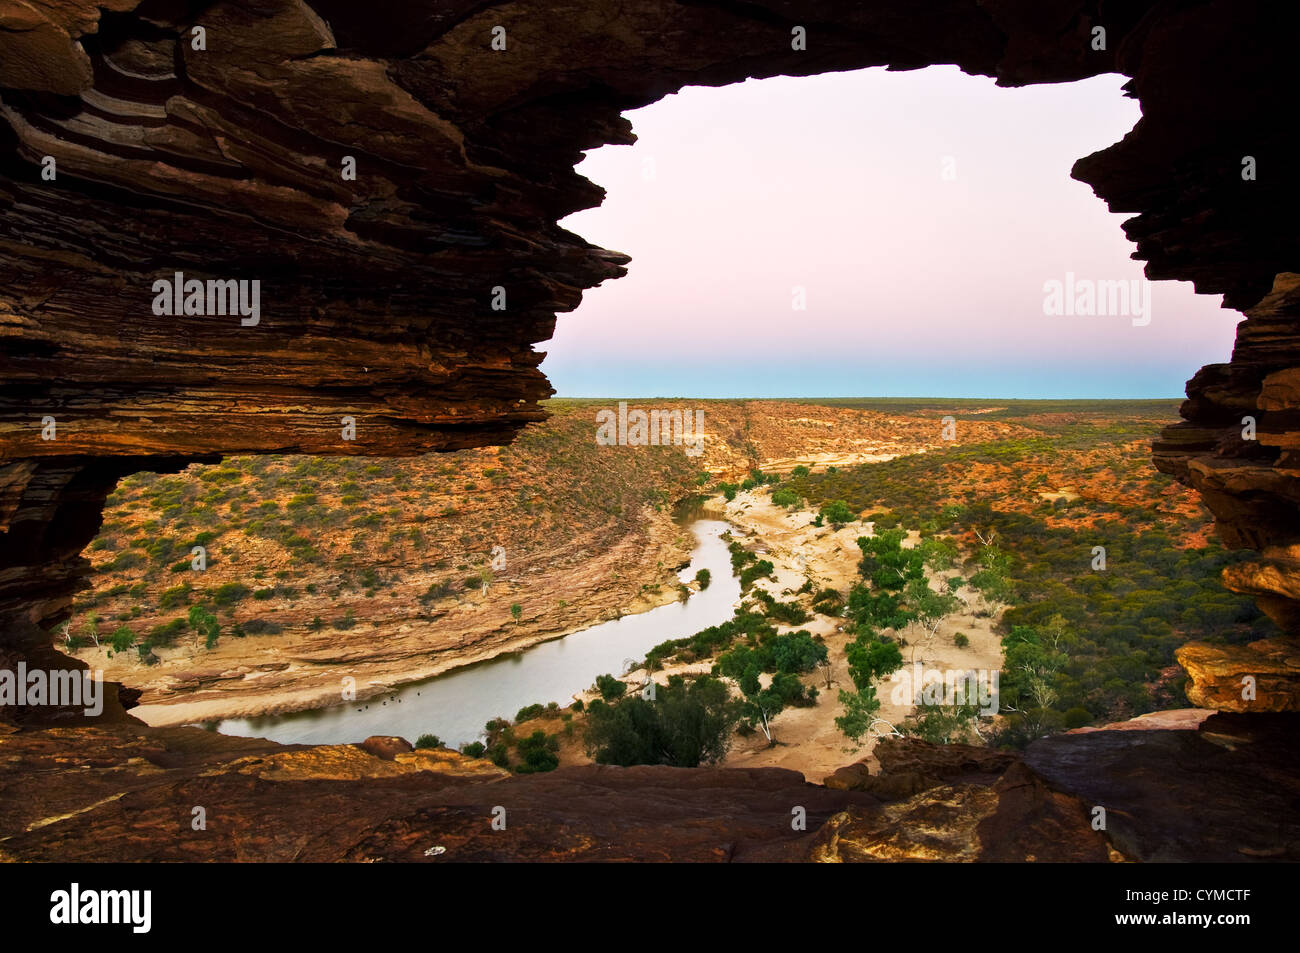 View through Natures Window into Murchison River Valley. - Stock Image